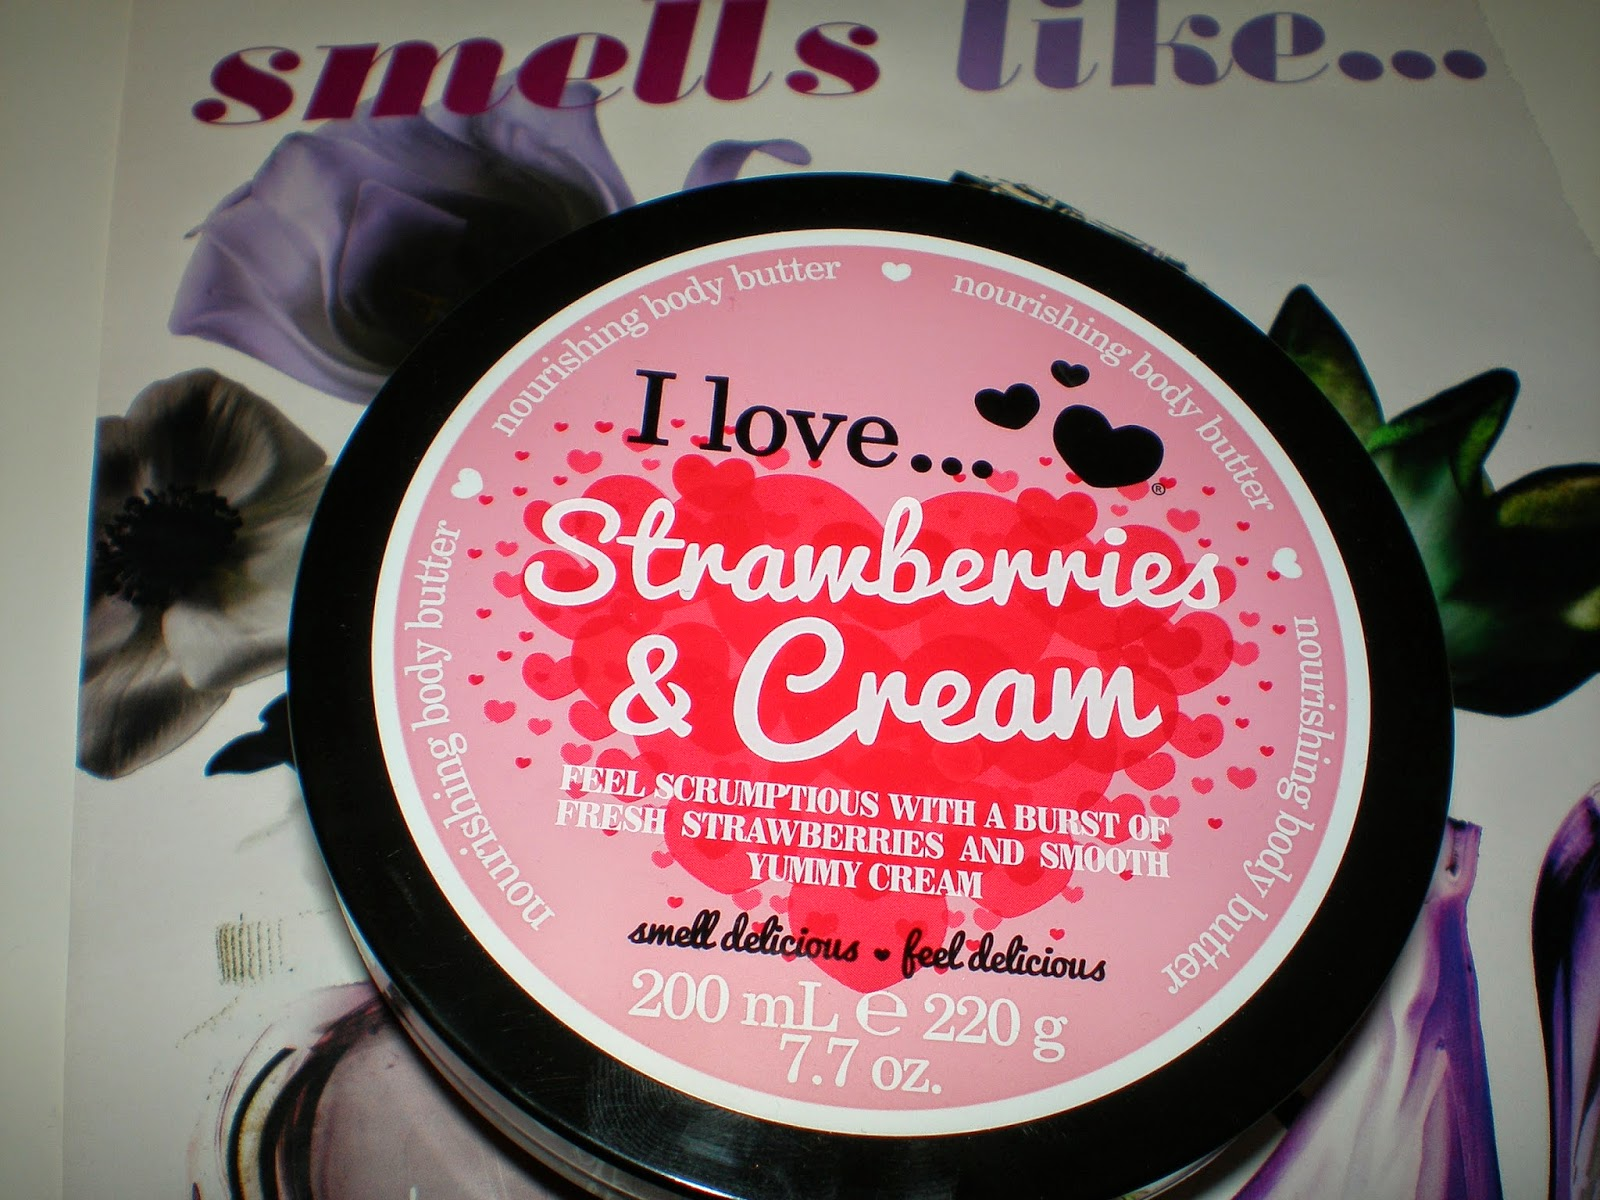 I love... Body Butter Strawberries and Cream